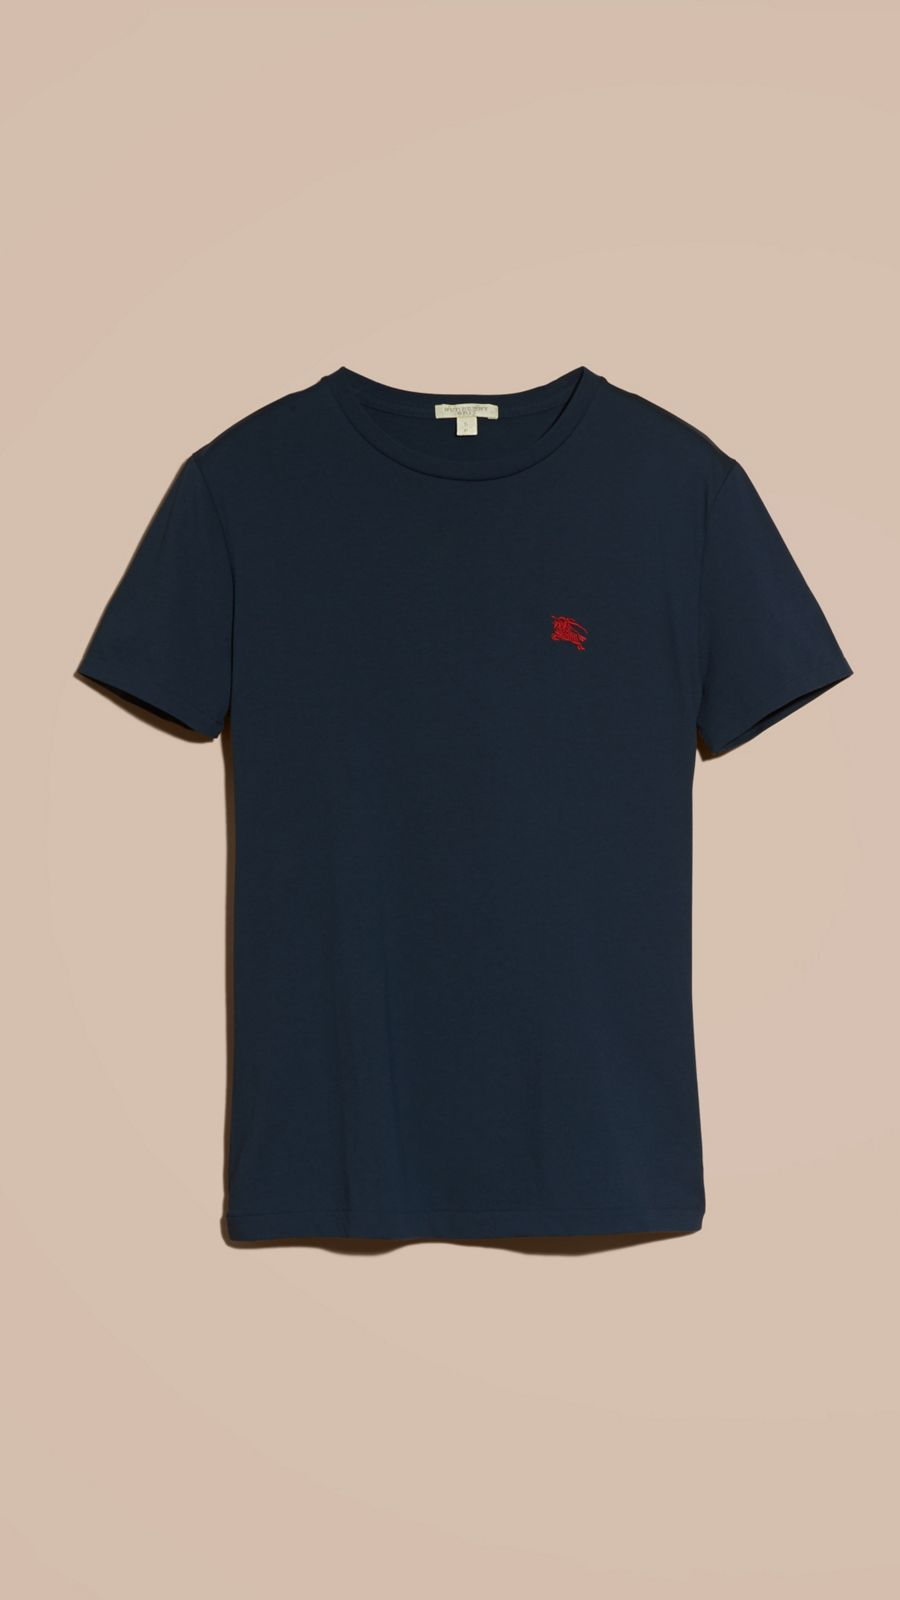 Navy Liquid-soft Cotton T-Shirt Navy - Image 4